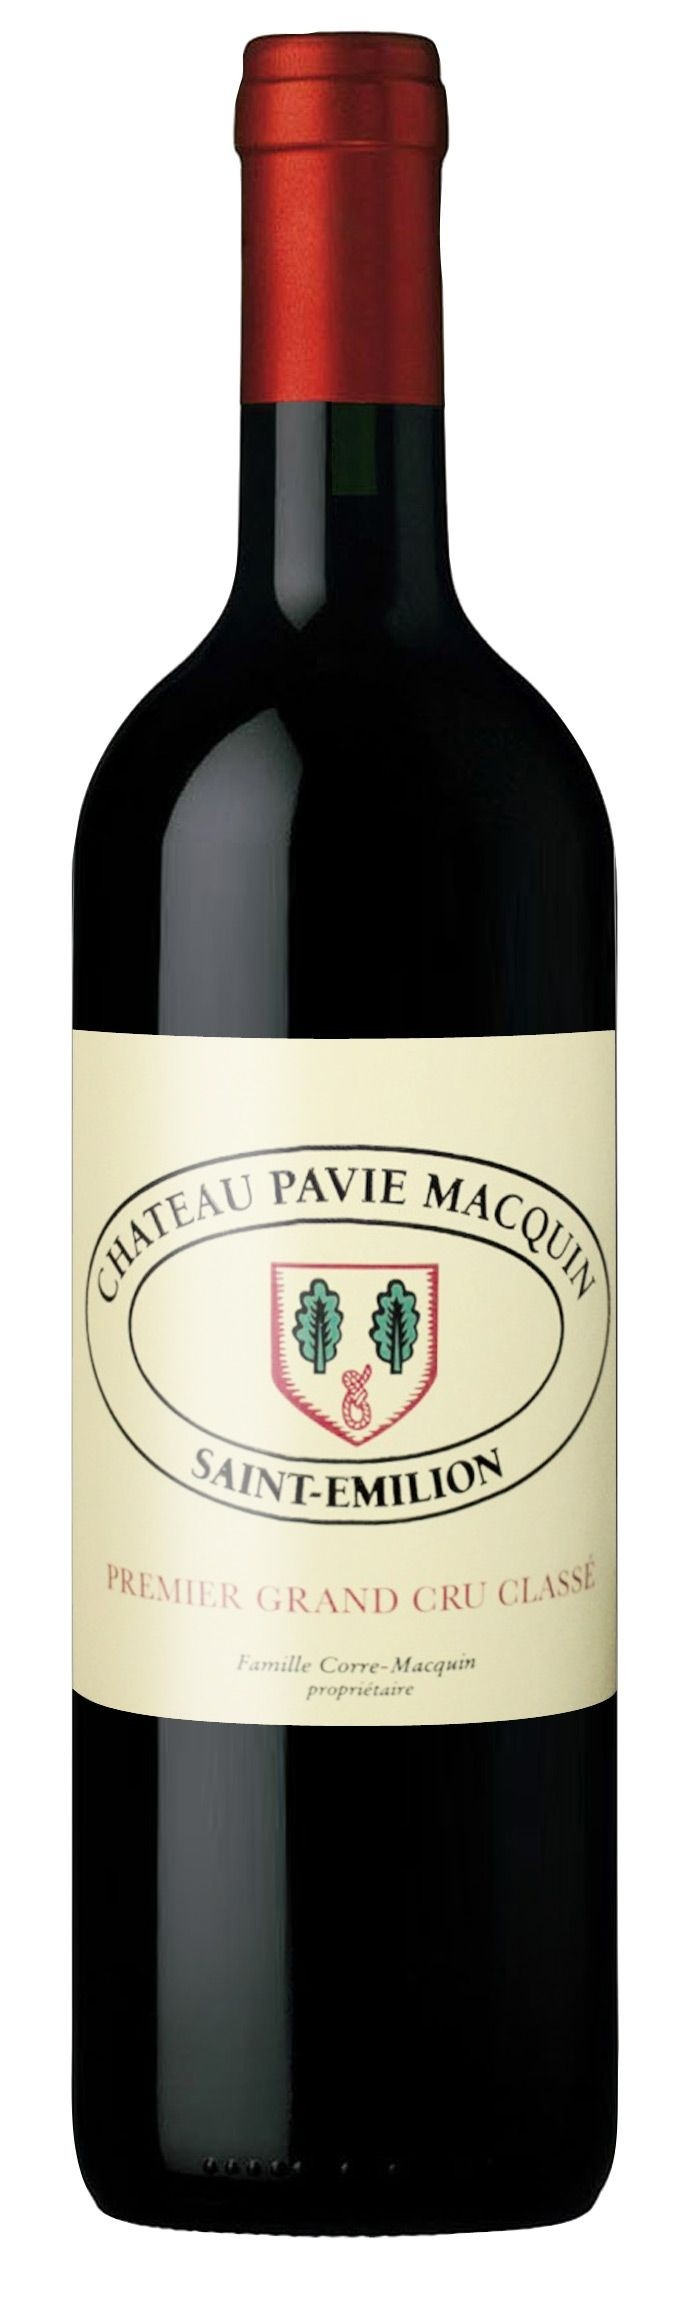 Chateau Pavie Macquin - 1.Grand Cru Classe, 2006